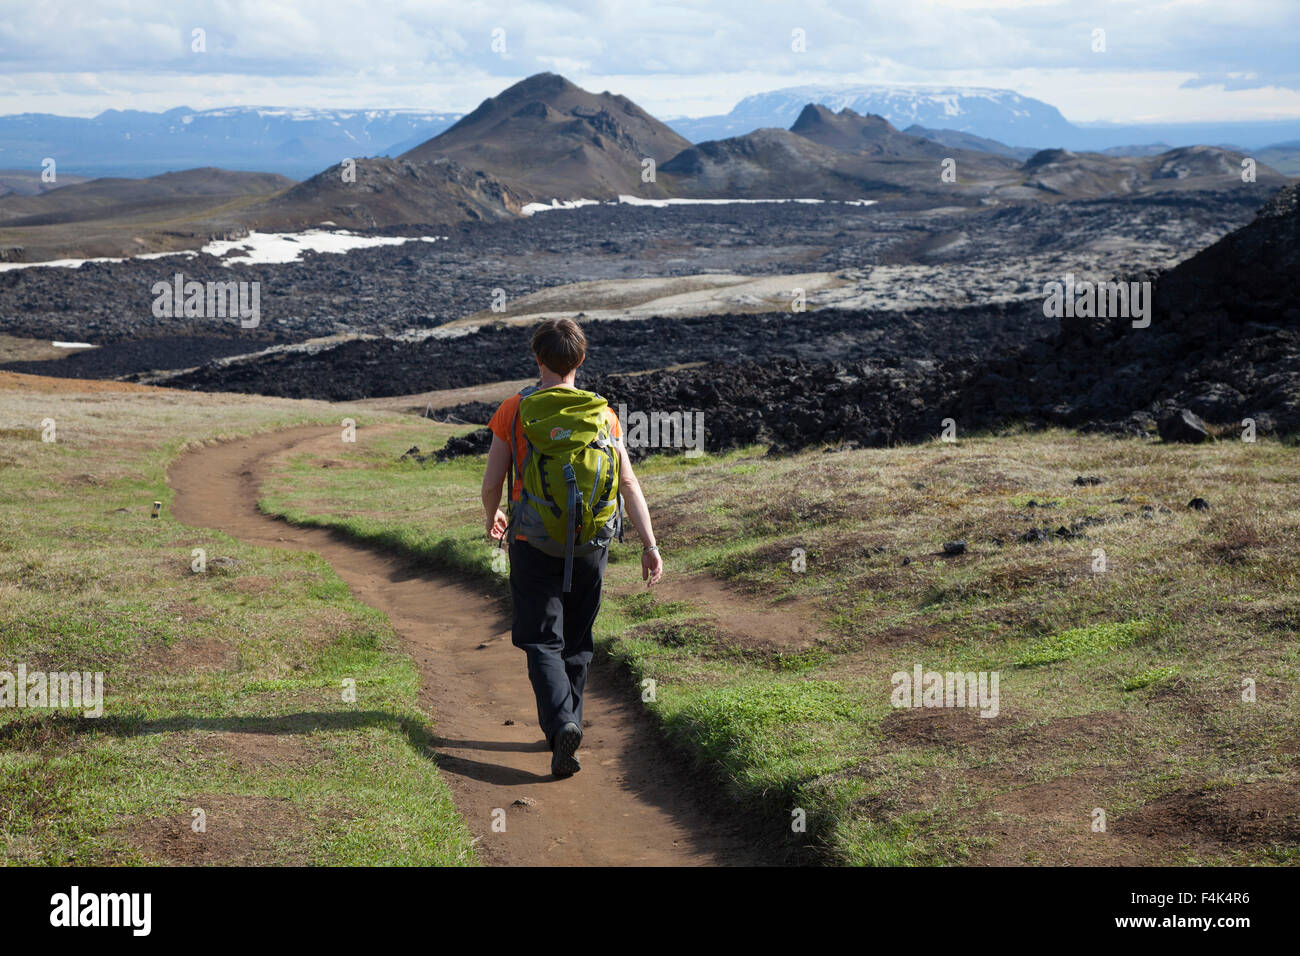 Hiker on the trail past Leirhnjukur lava field, Krafla volcanic area, Myvatn, Nordhurland Eystra, Iceland. - Stock Image